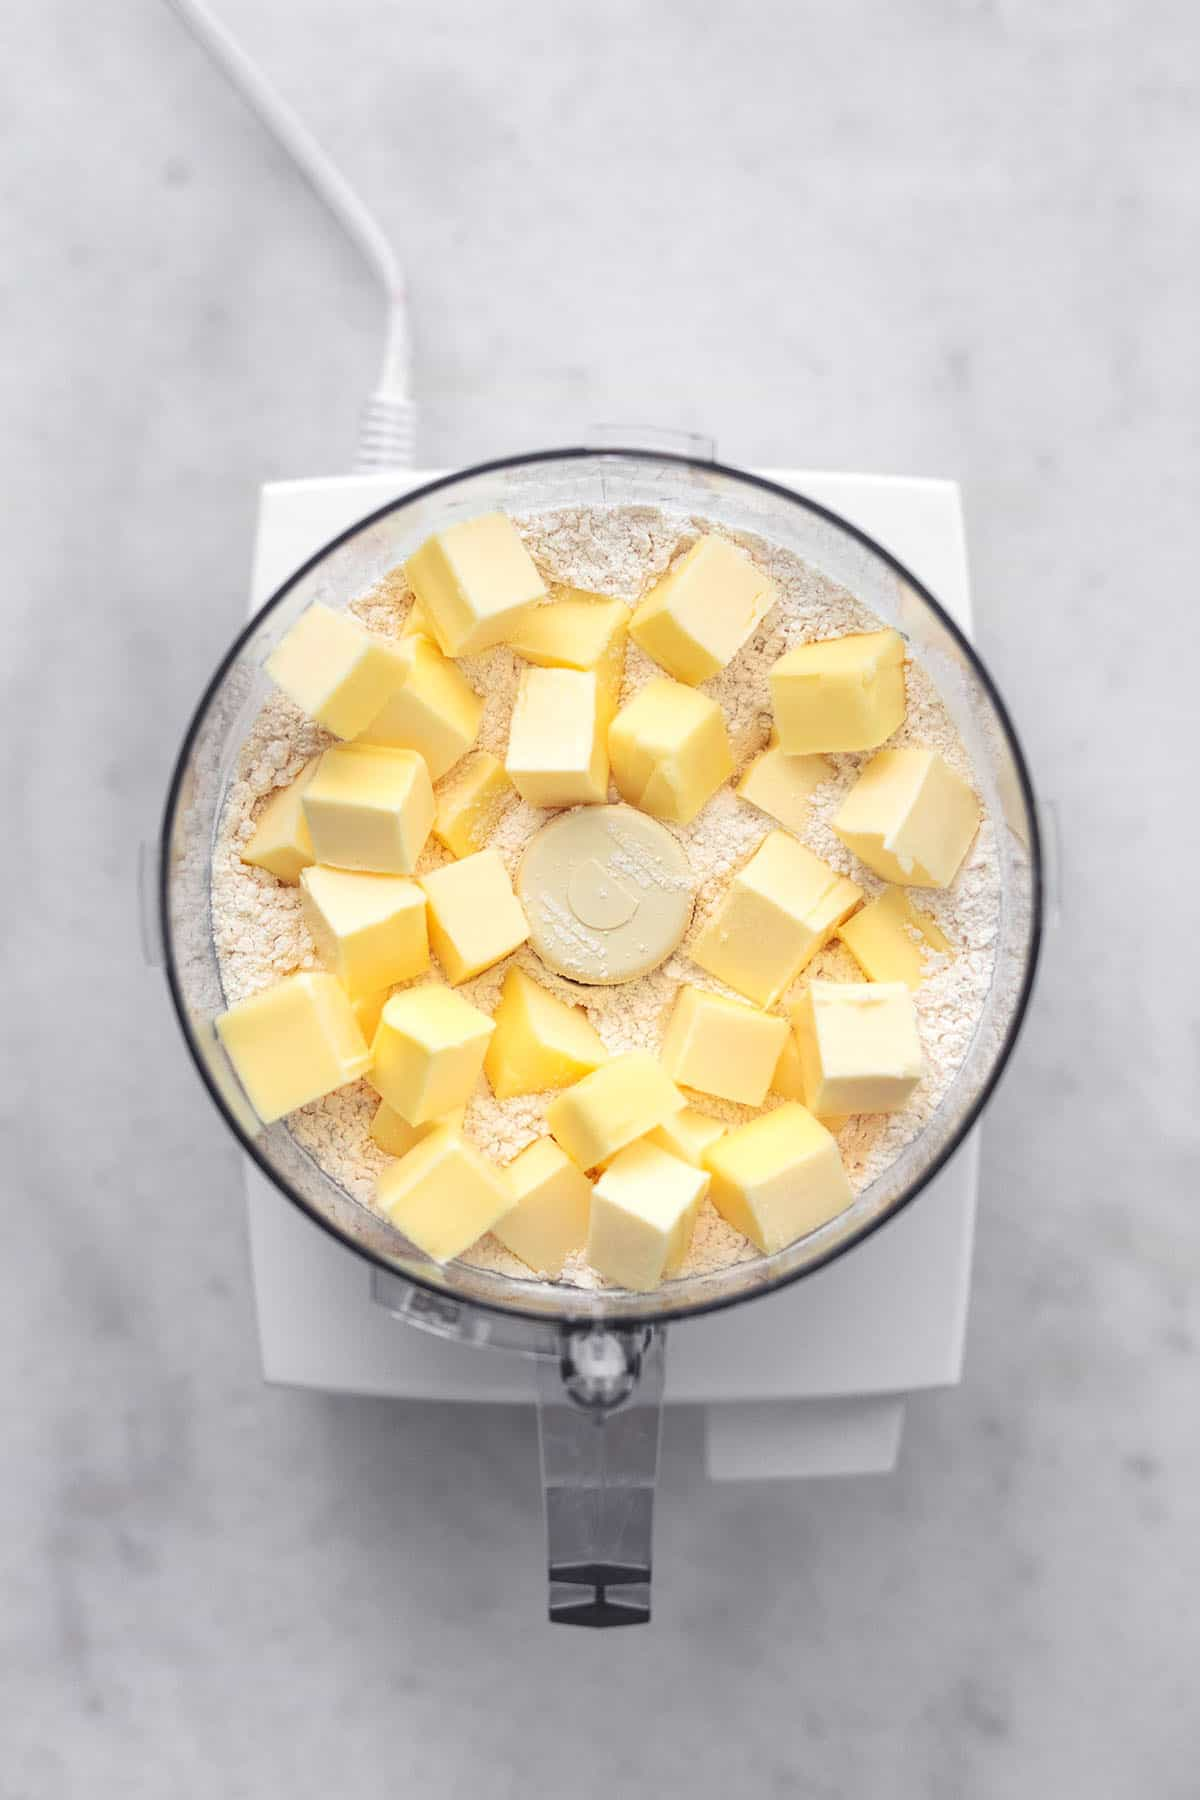 top view of diced butter cubes and flour mixture in a food processor.